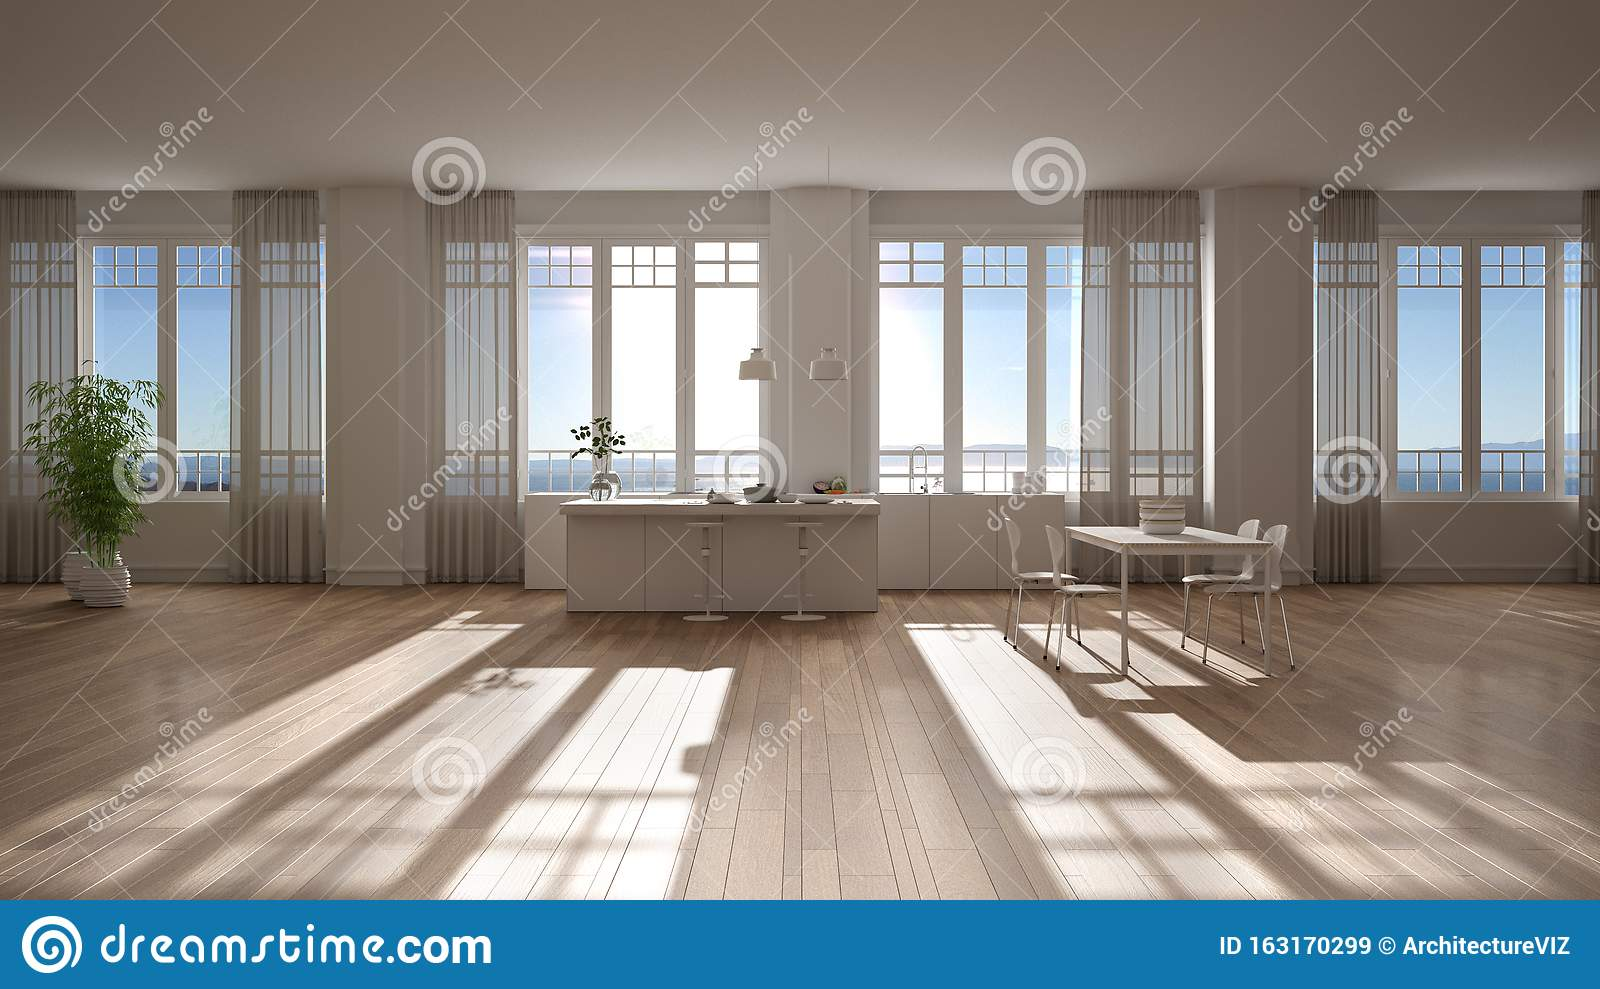 White Kitchen In Contemporary Style With Bar Top And Wooden Stools Suspended Lamps Dining Table With Chairs Panoramic Windows Stock Image Image Of Design Empty 163170299